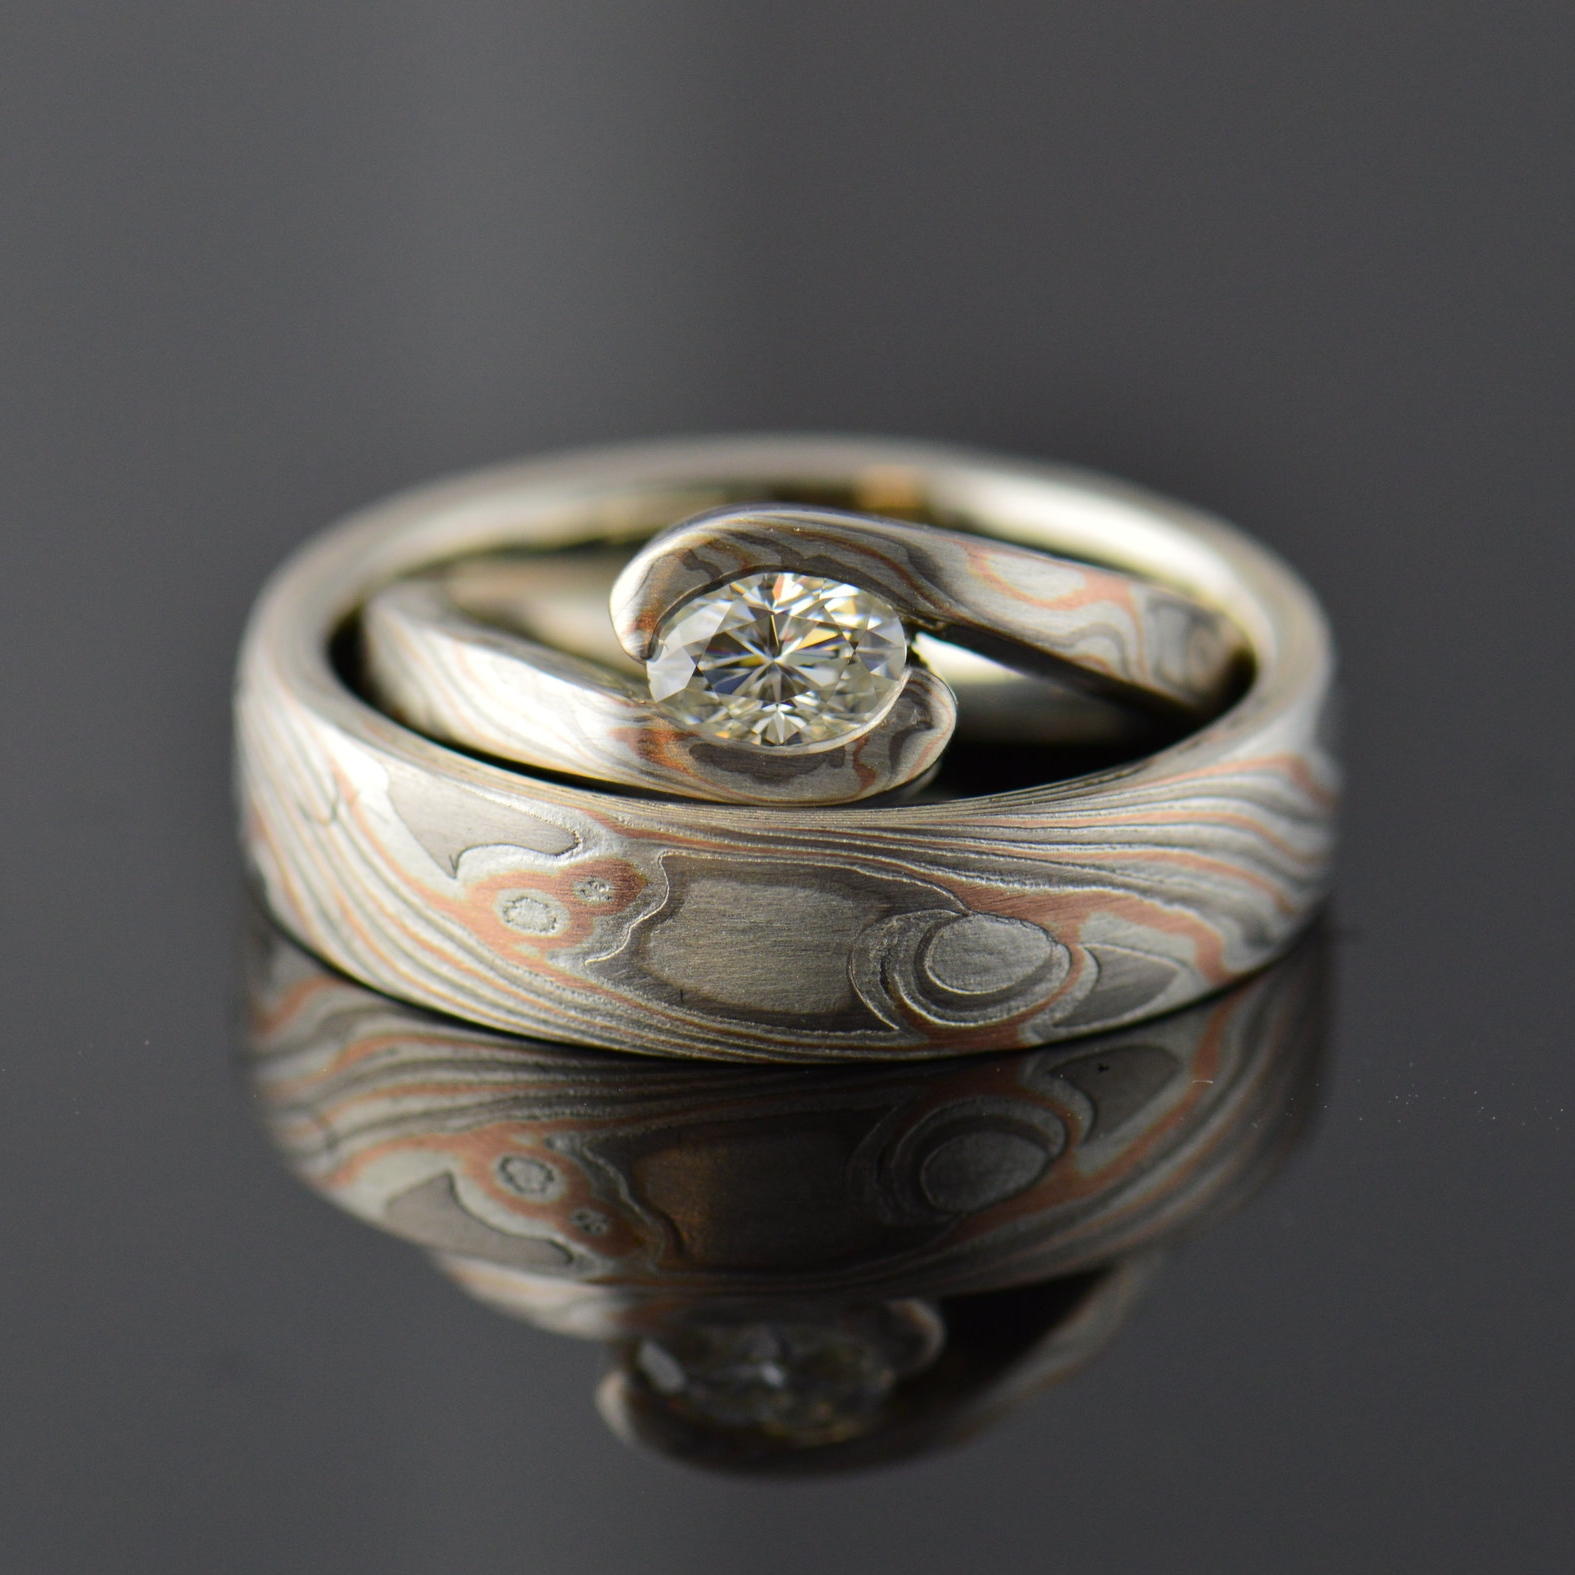 darvier-mokume-hand-forged-set-oval-moissanite.JPG